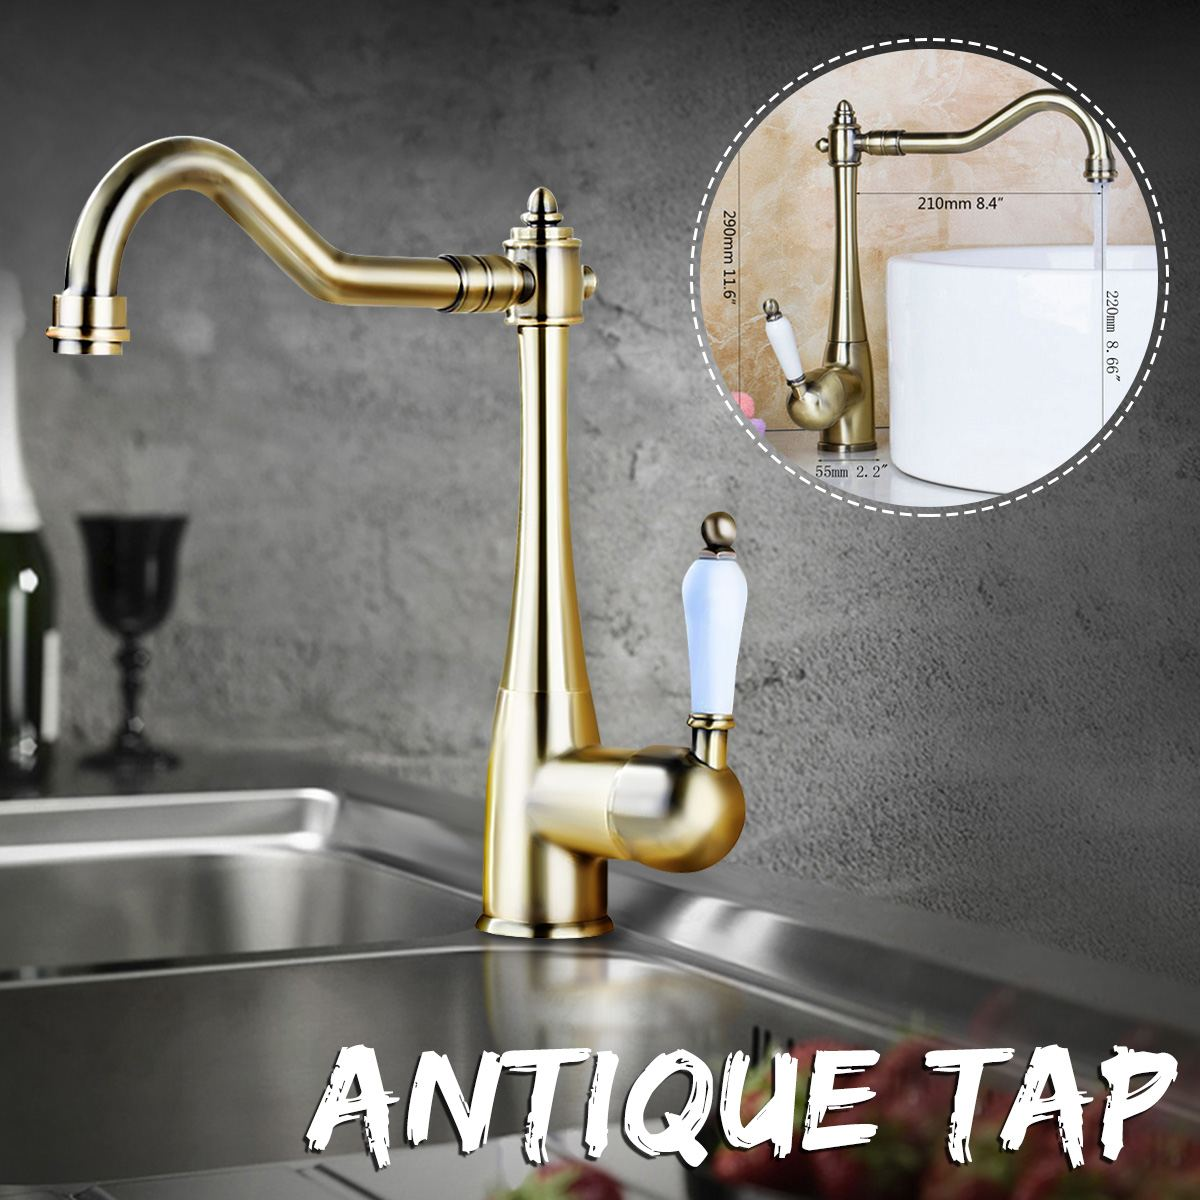 Xueqin Antique Copper Bathroom Basin Faucet Deck Mounted Single Handle Classic Mixer Tap Bathroom Sink Faucet Hot And Cold Water